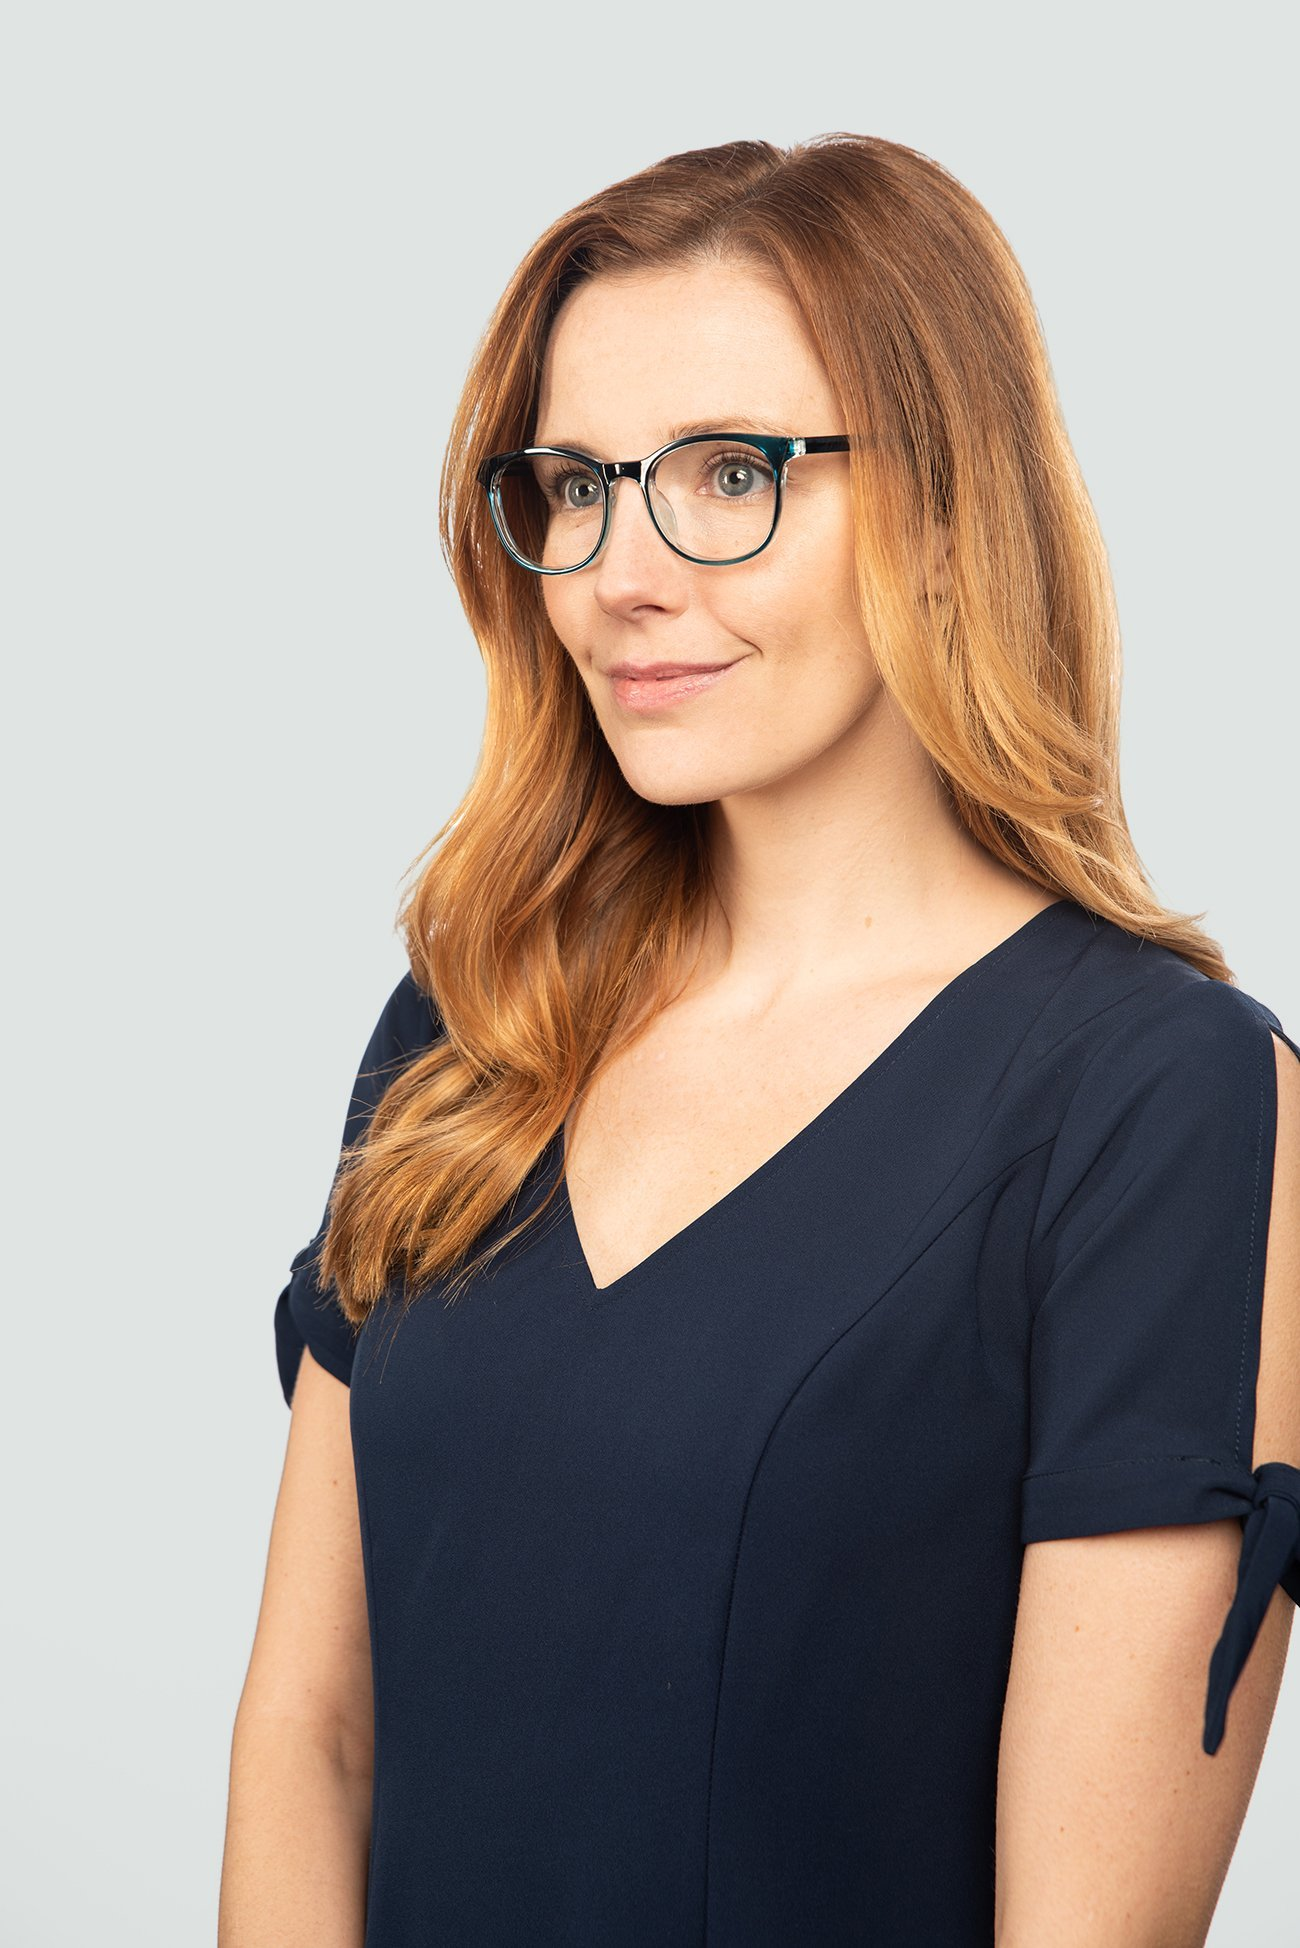 red head wearing plastic blue glasses